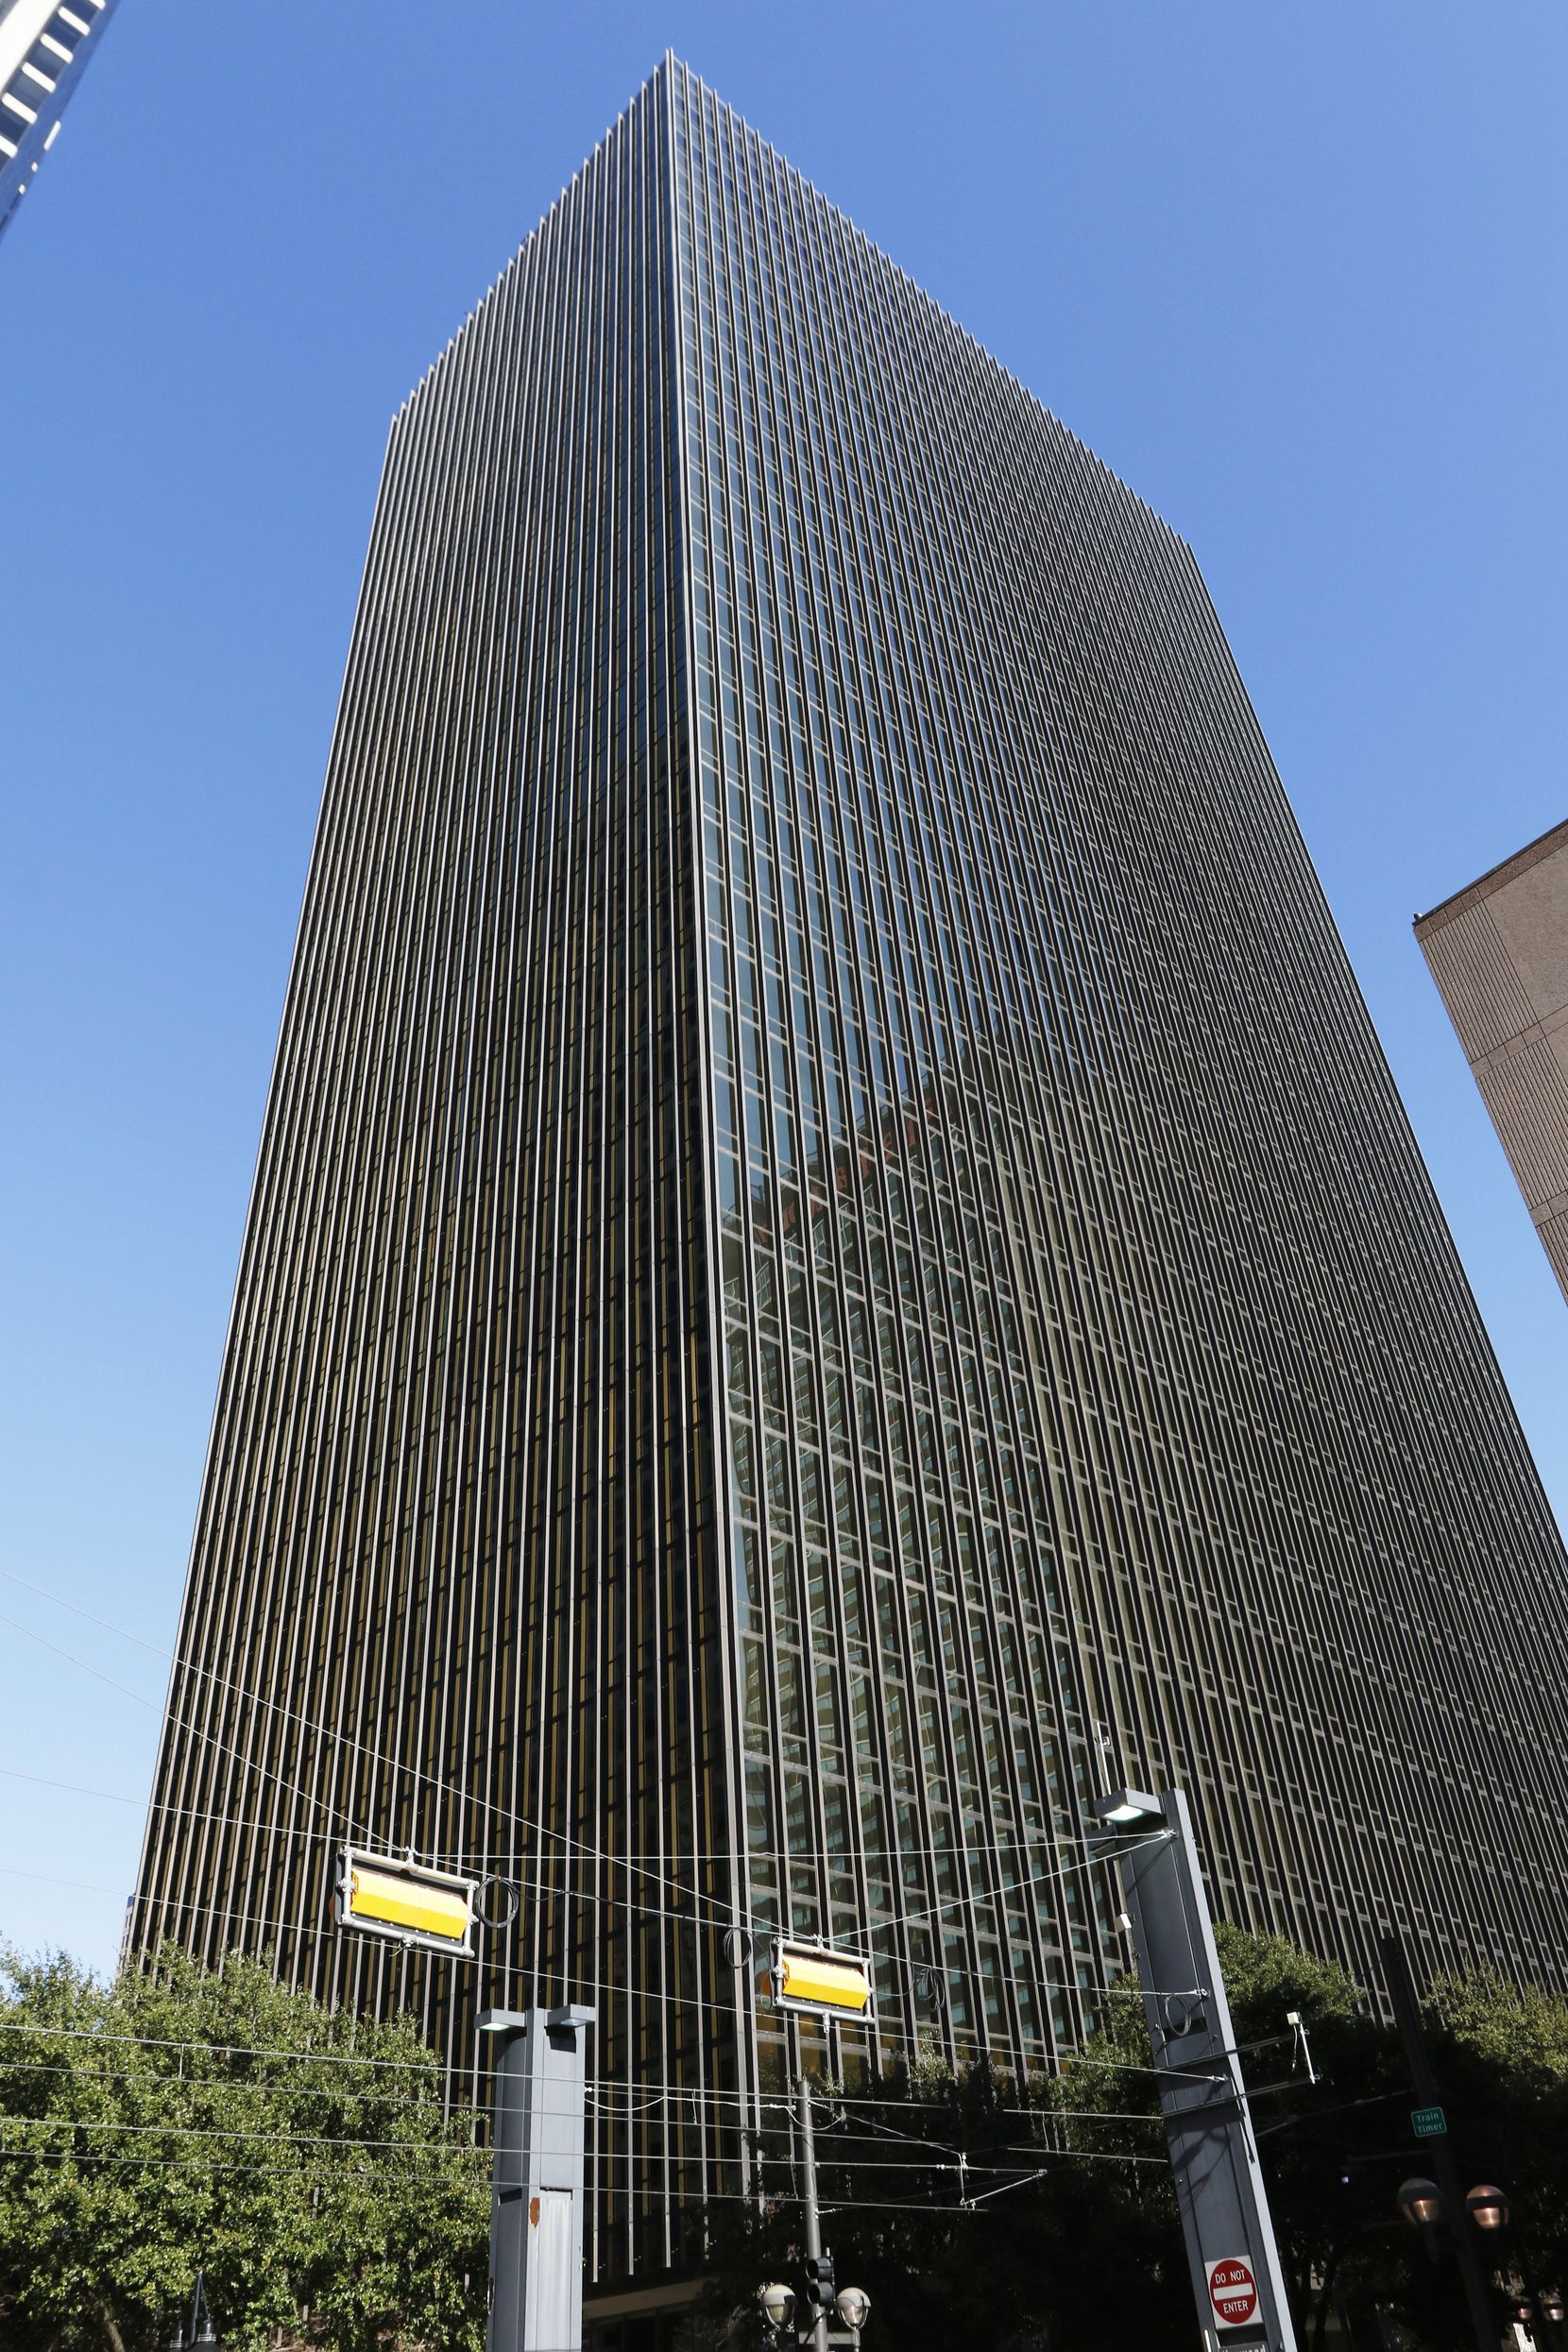 Bryan Tower located in downtown Dallas contains 40 floors and was completed in 1973.